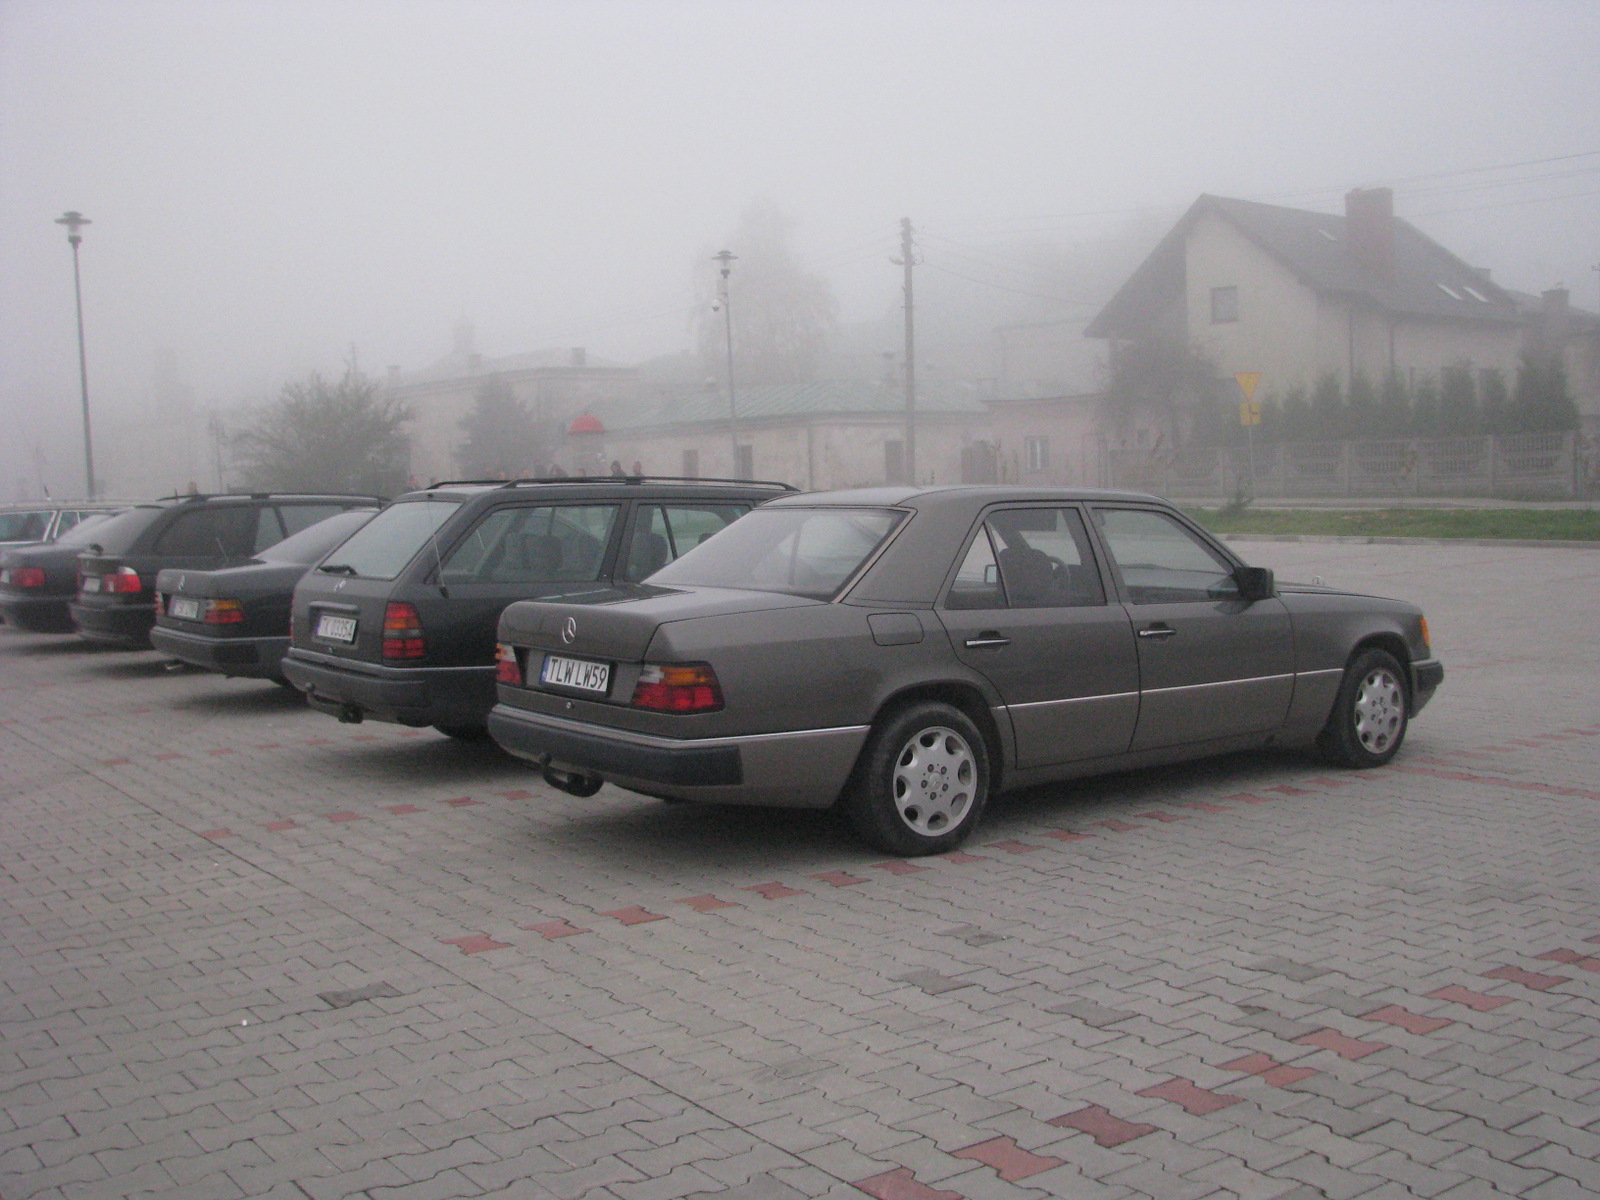 http://124coupe.pl/hosting/images/img000lol.jpg